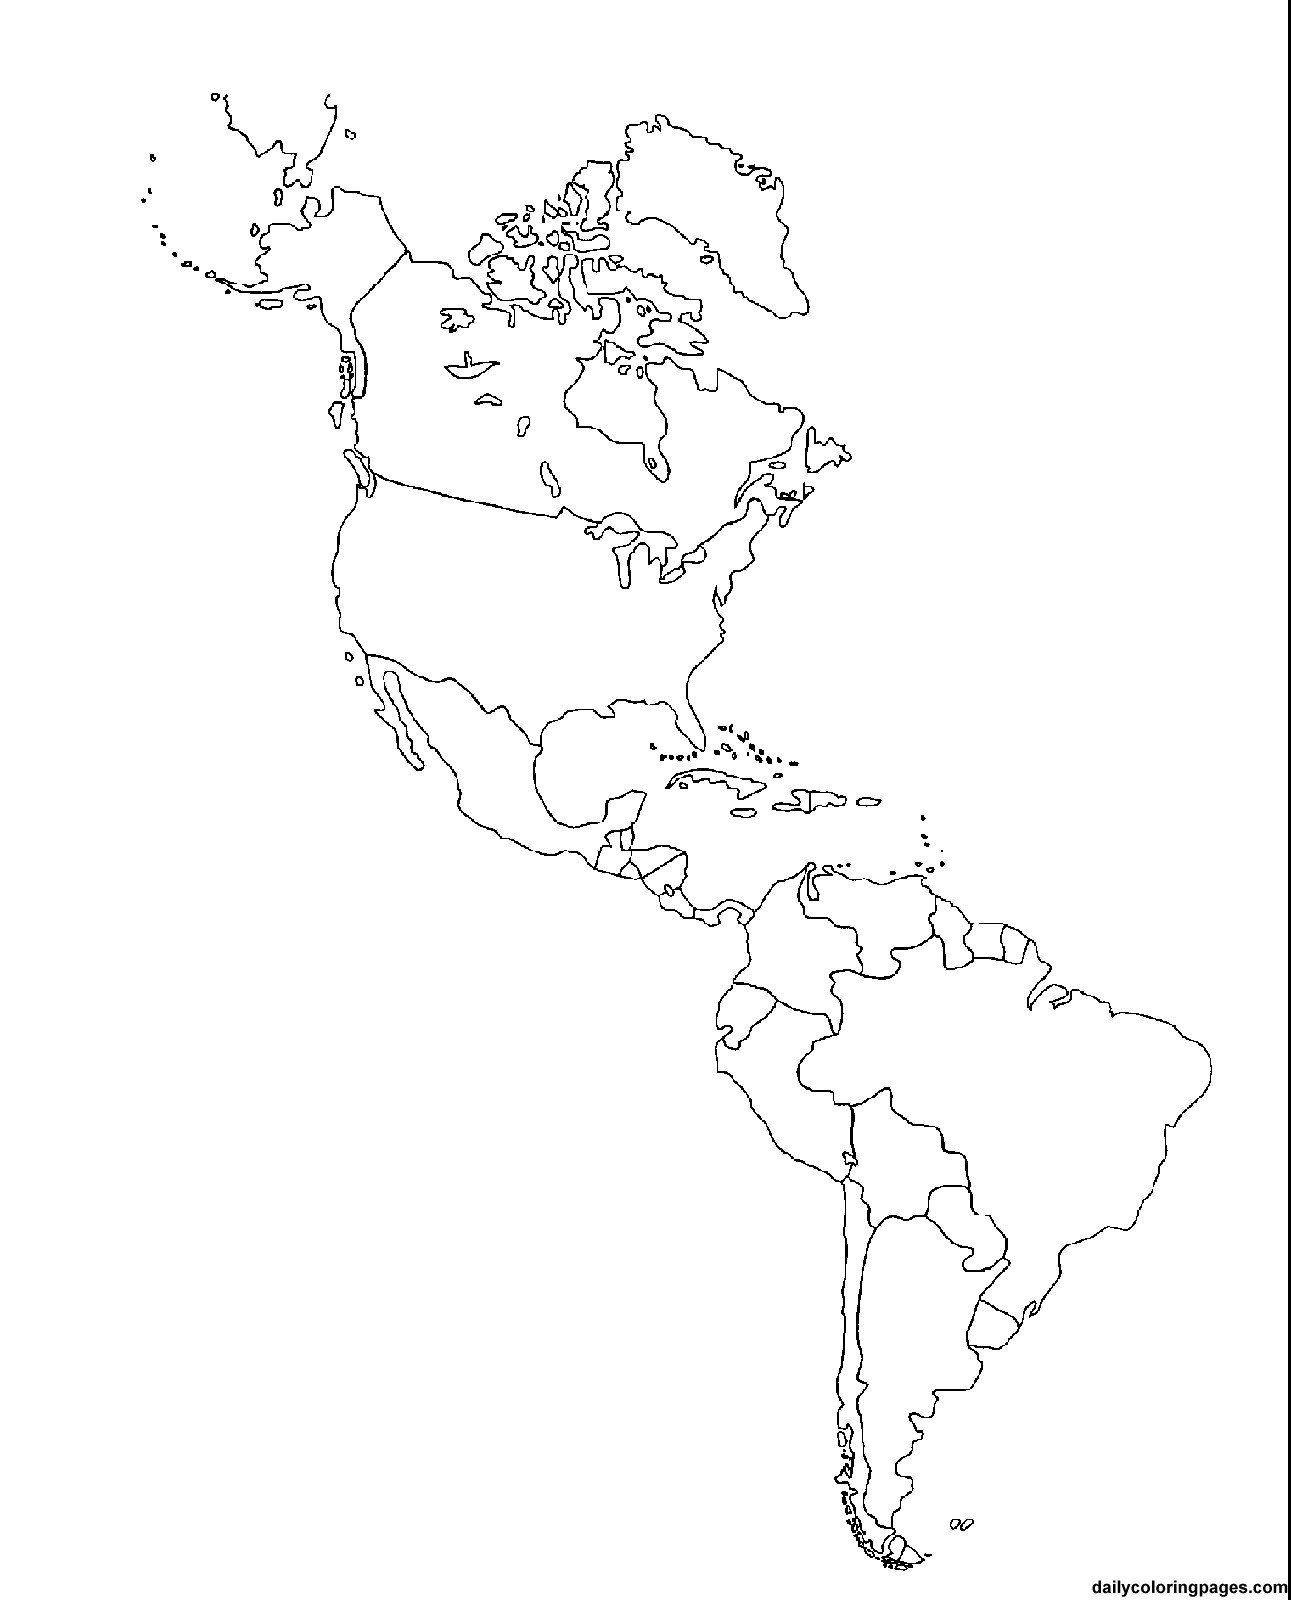 United States Coloring Page Elegant 24 Jamaica Coloring